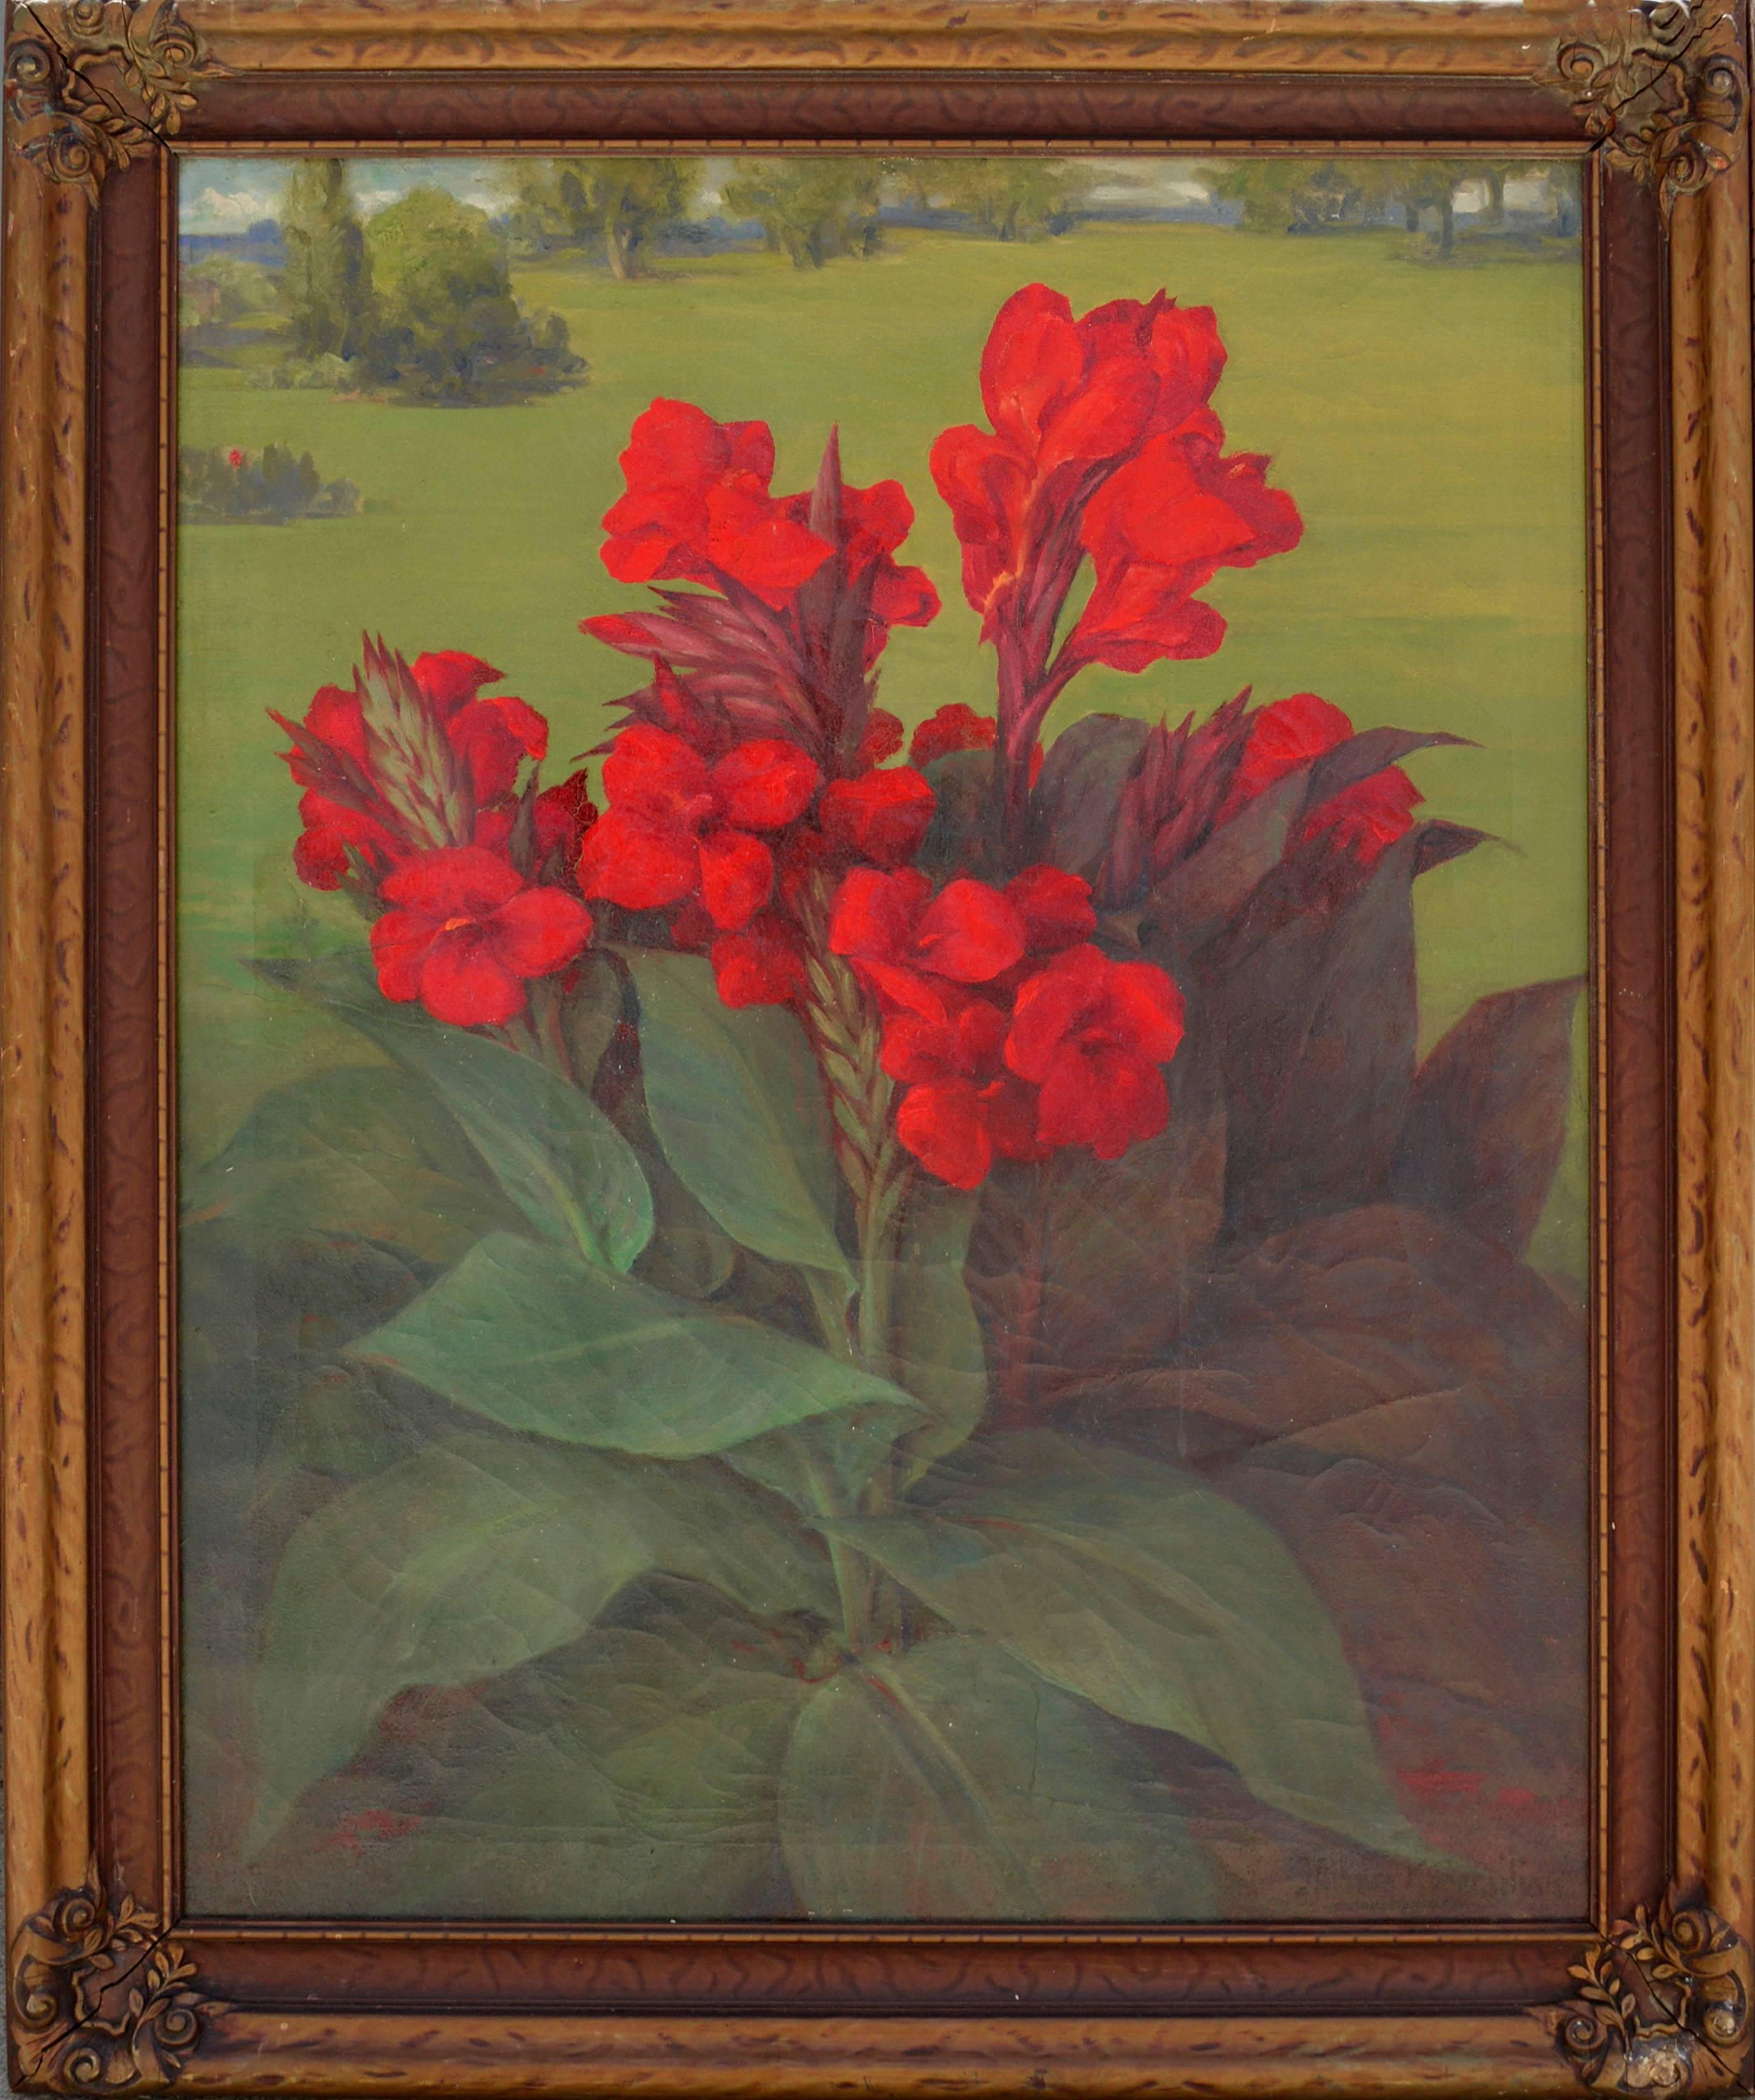 Mid Century Garden Landscape with Red Canna Lilies